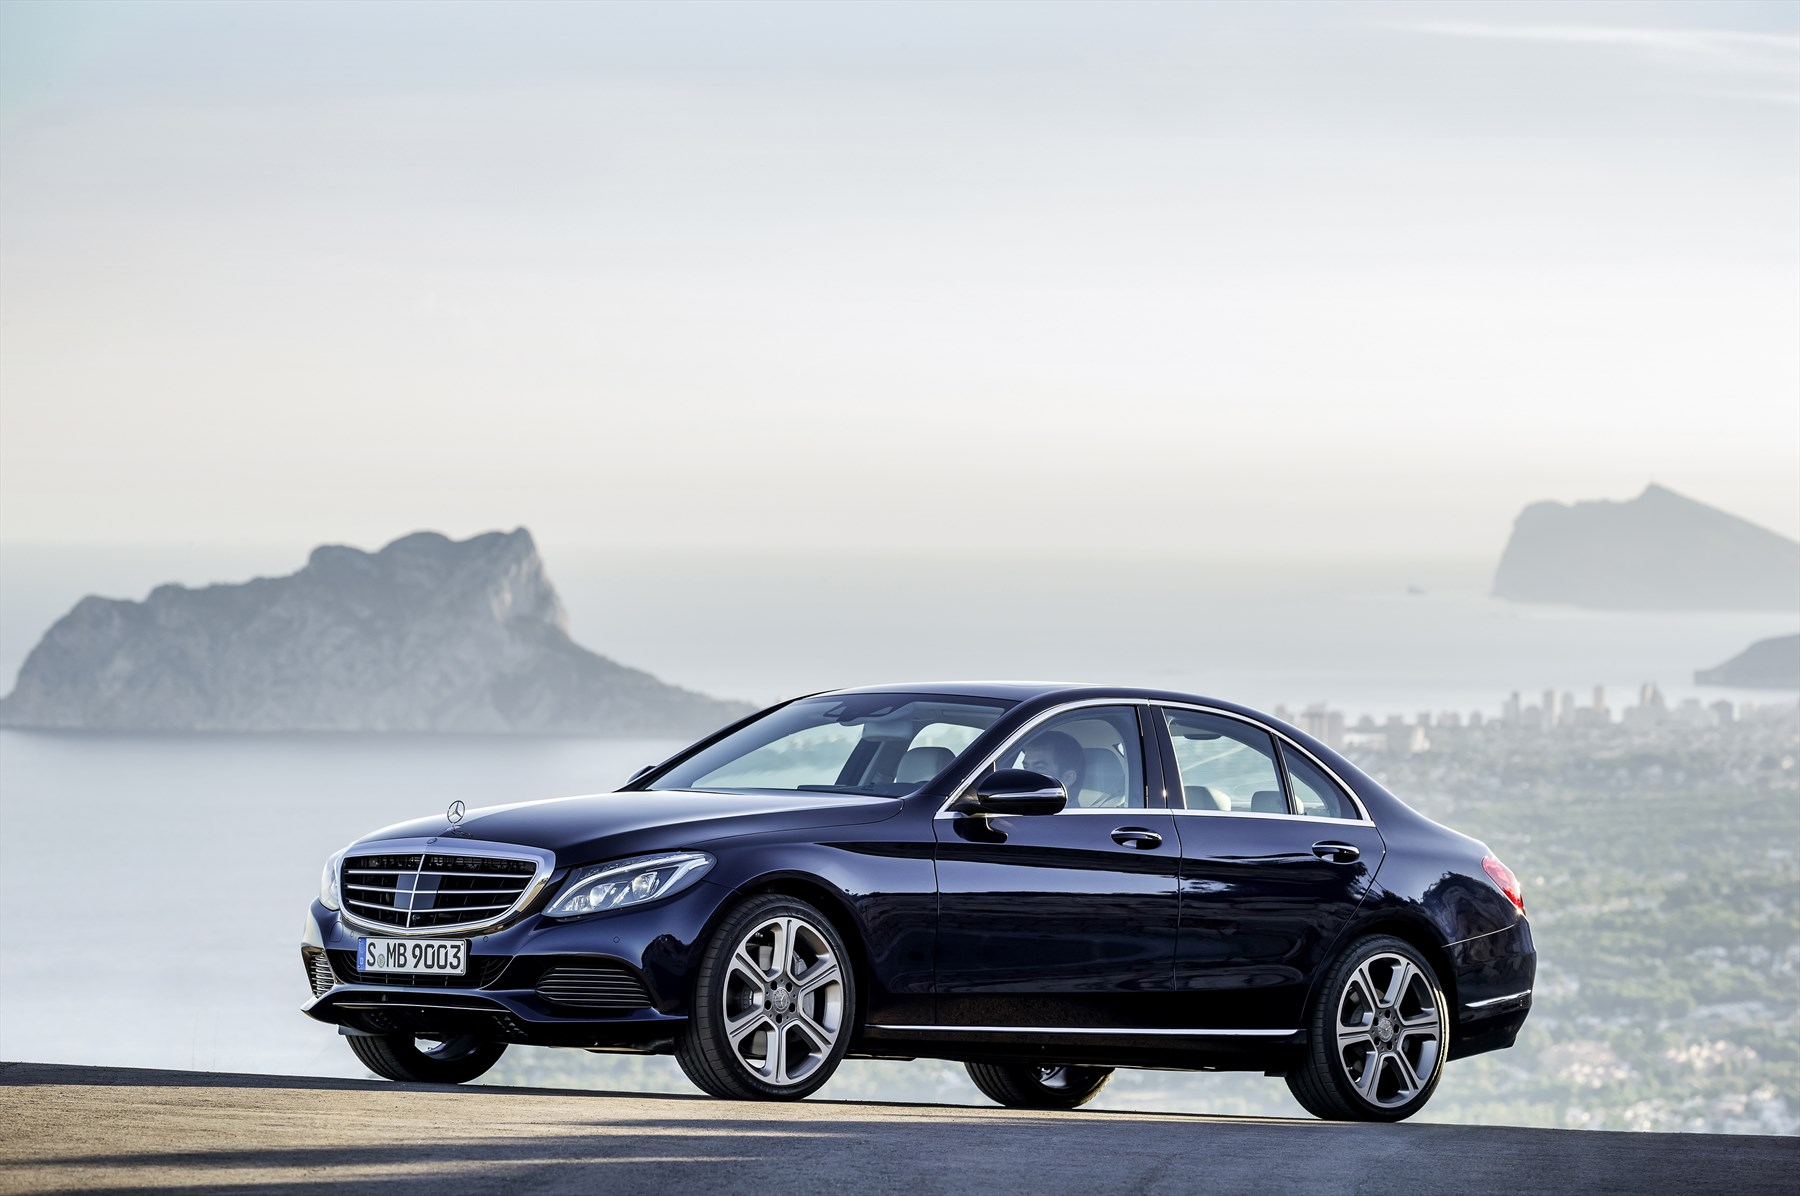 New Benz C-Class Lands: Latest News